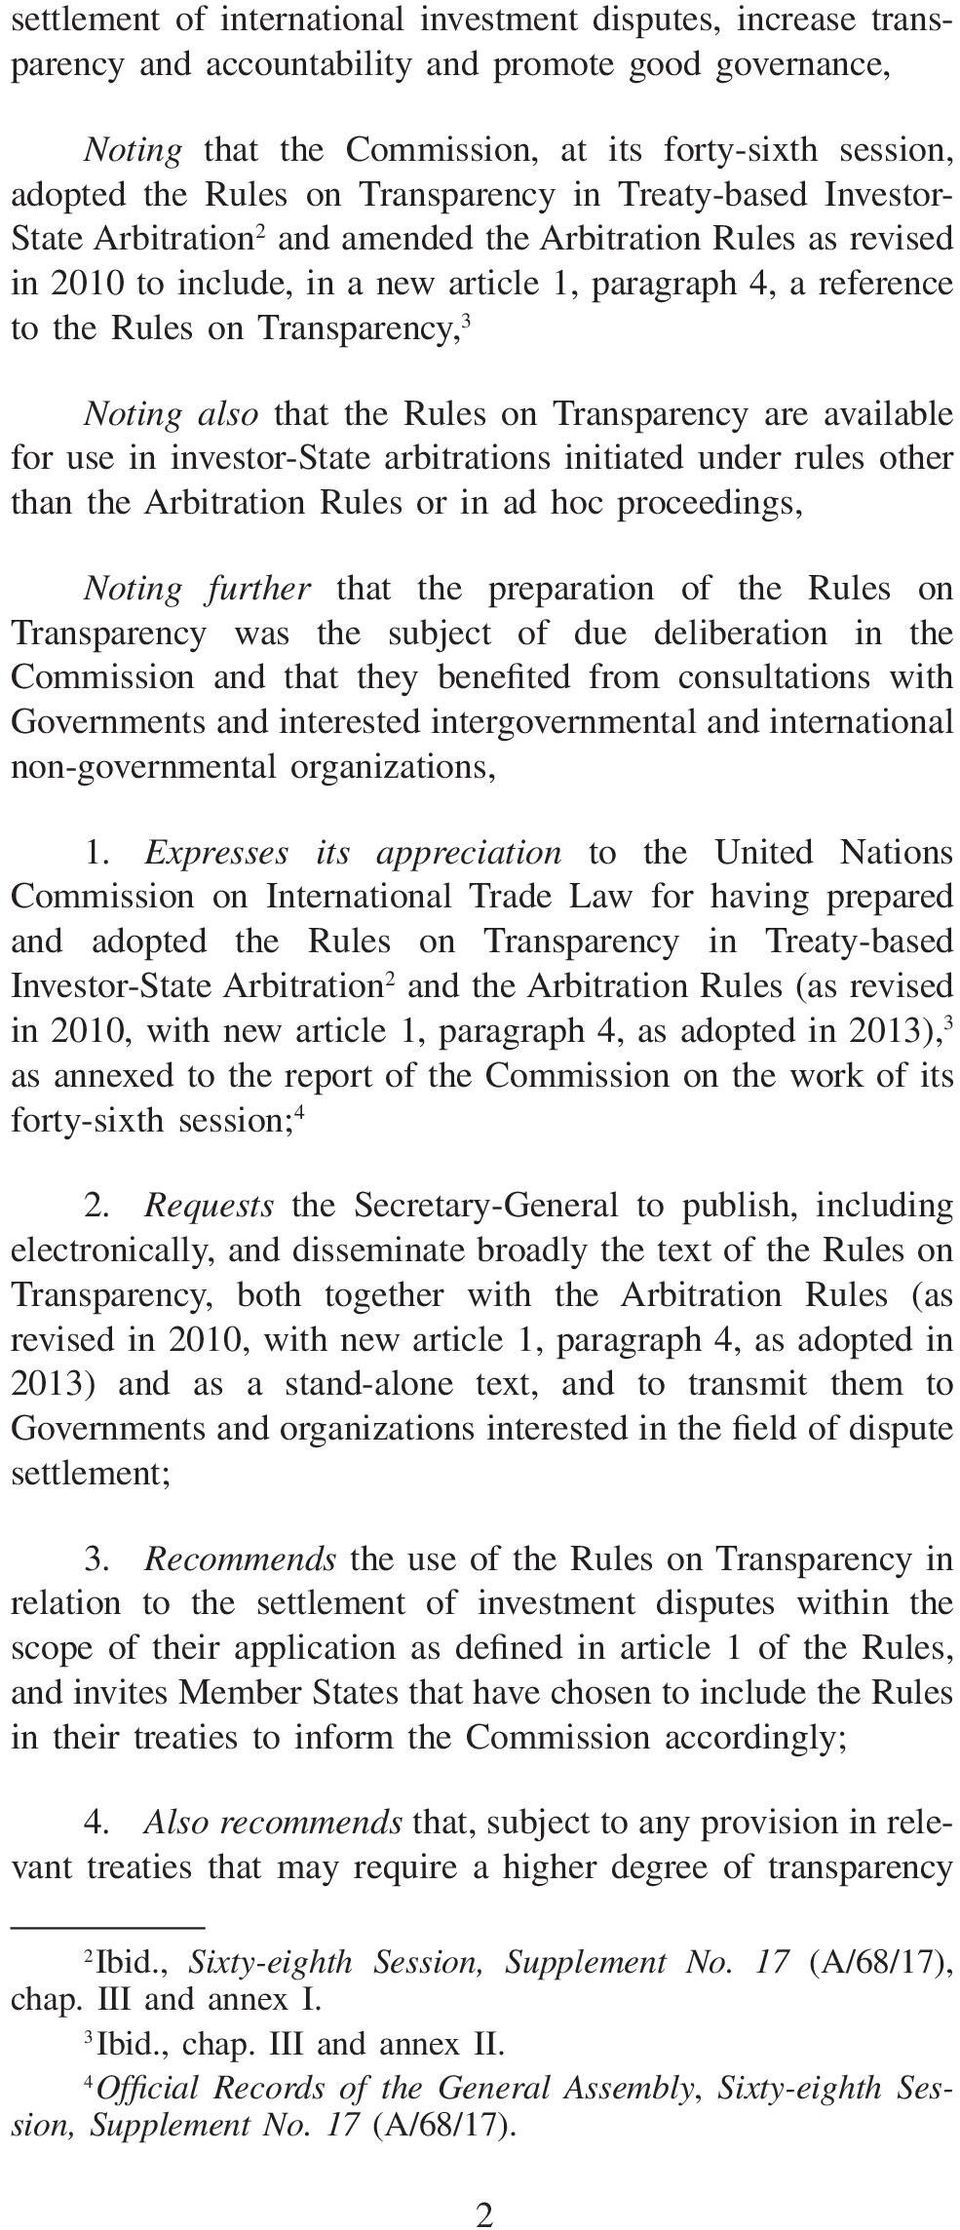 3 Noting also that the Rules on Transparency are available for use in investor-state arbitrations initiated under rules other than the Arbitration Rules or in ad hoc proceedings, Noting further that